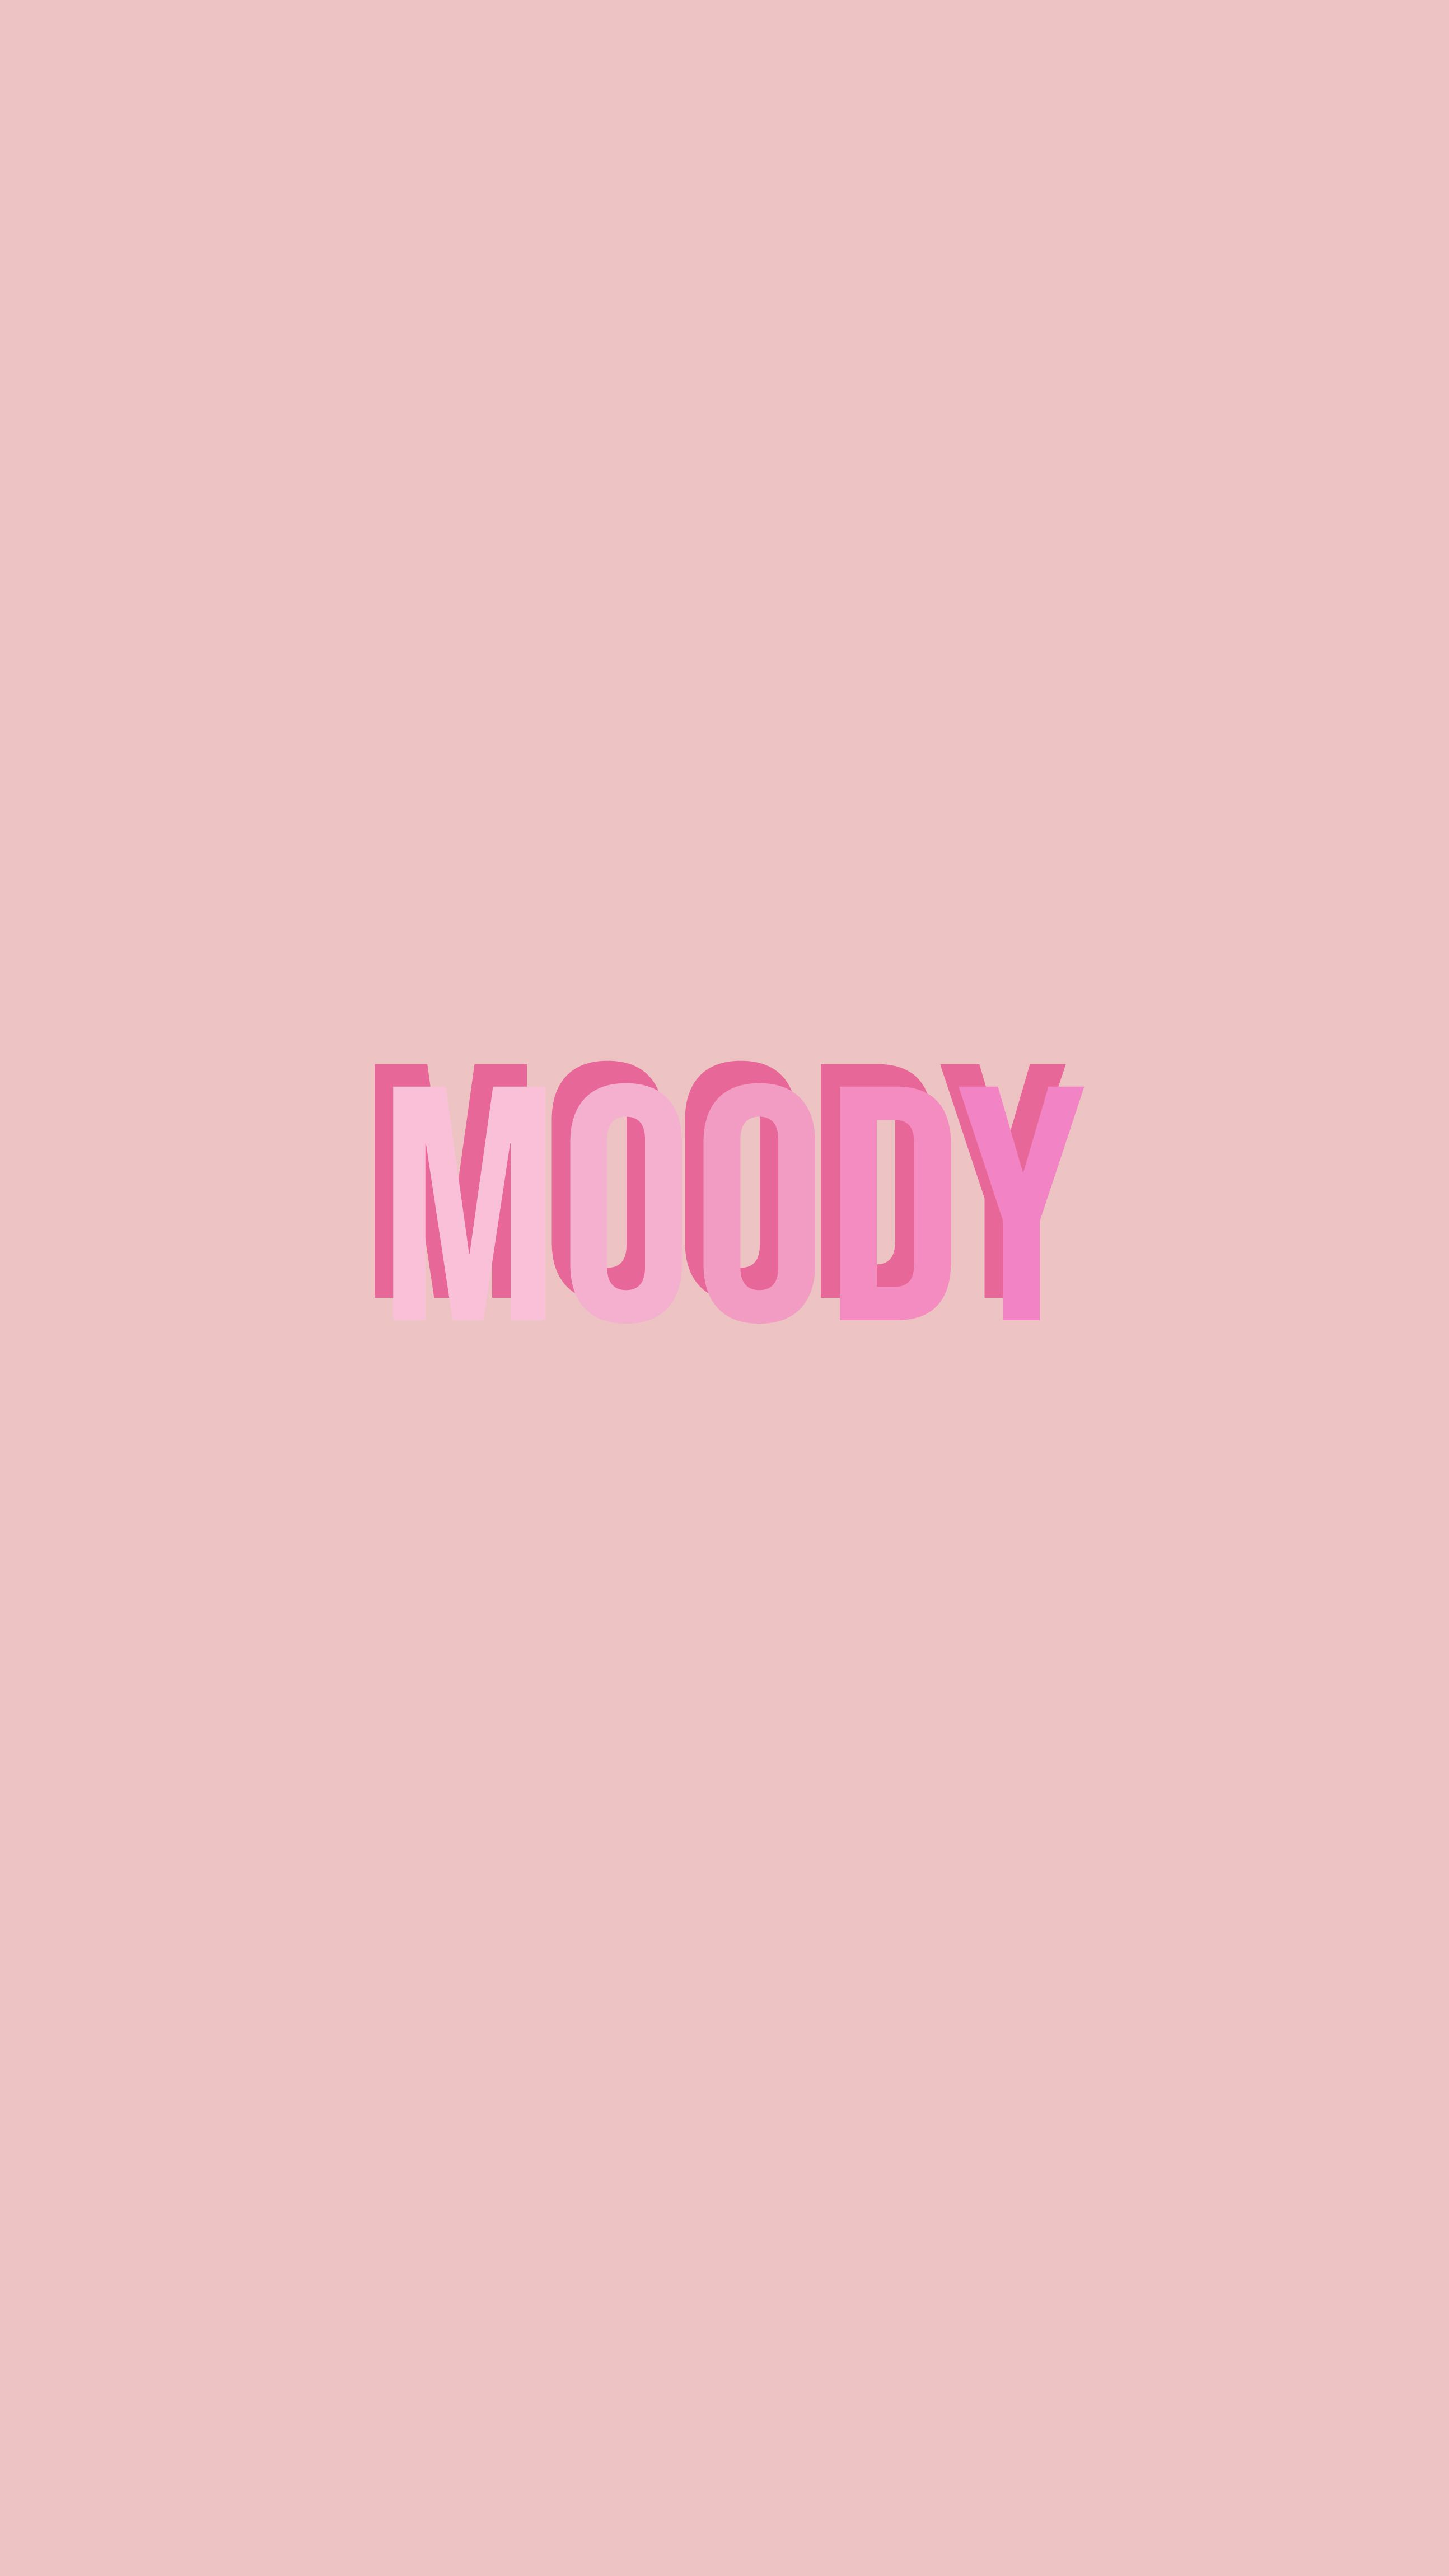 More Iphone Wallpapers Phone Wallpaper Moody Pink Pms Wallpaper Background Quote Word Te Pink Wallpaper Iphone Pink Logo Wallpaper Iphone Background